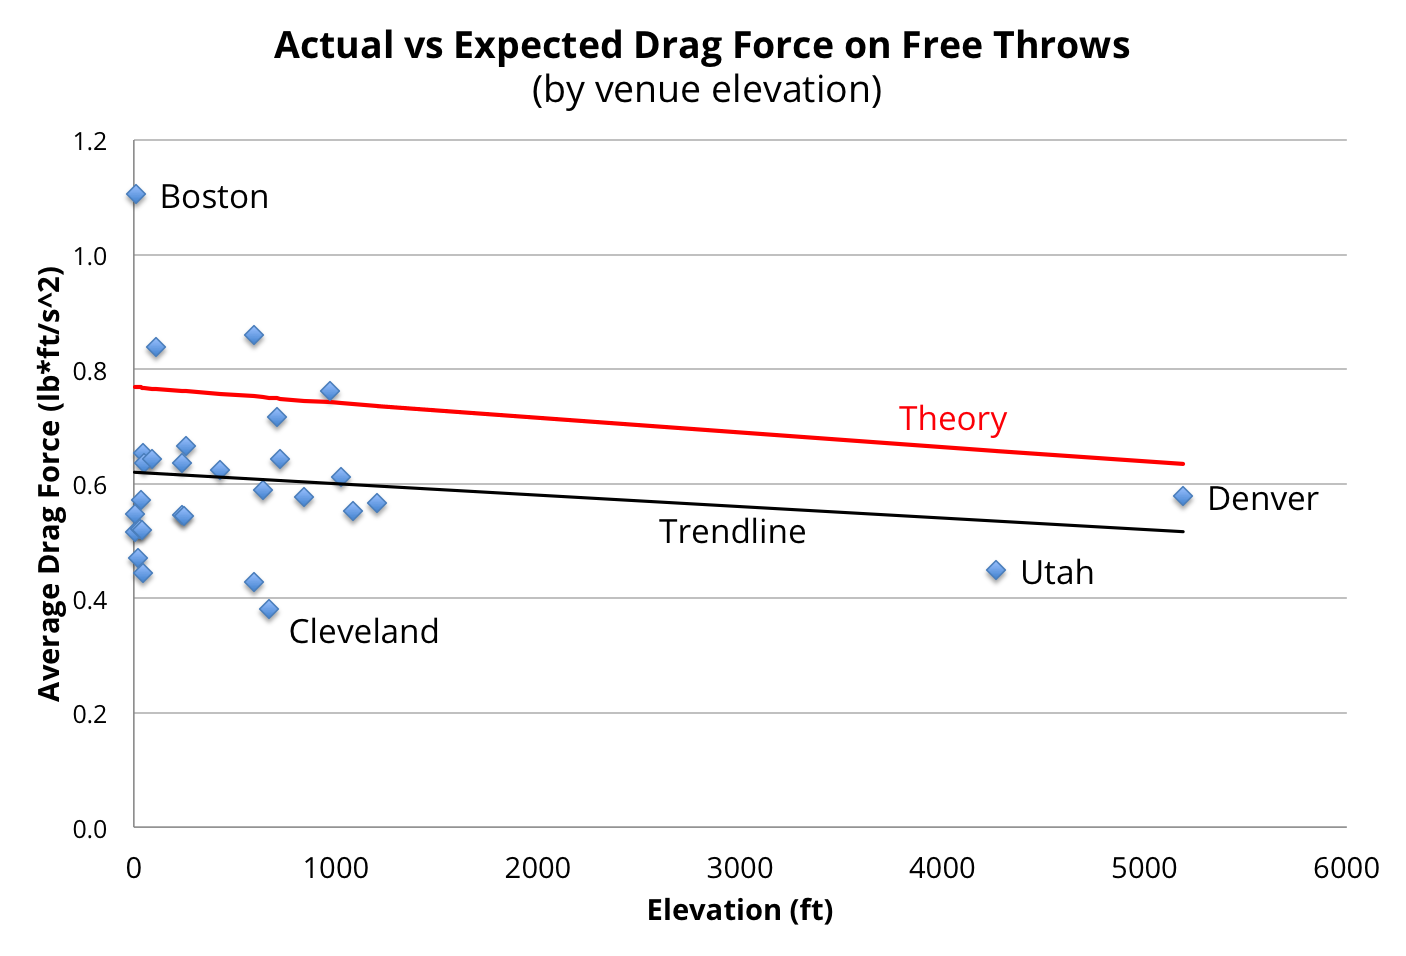 First, the correlation between elevation and drag force is not very tight, so we may just be chasing noise. The trendline, which is just a linear fit